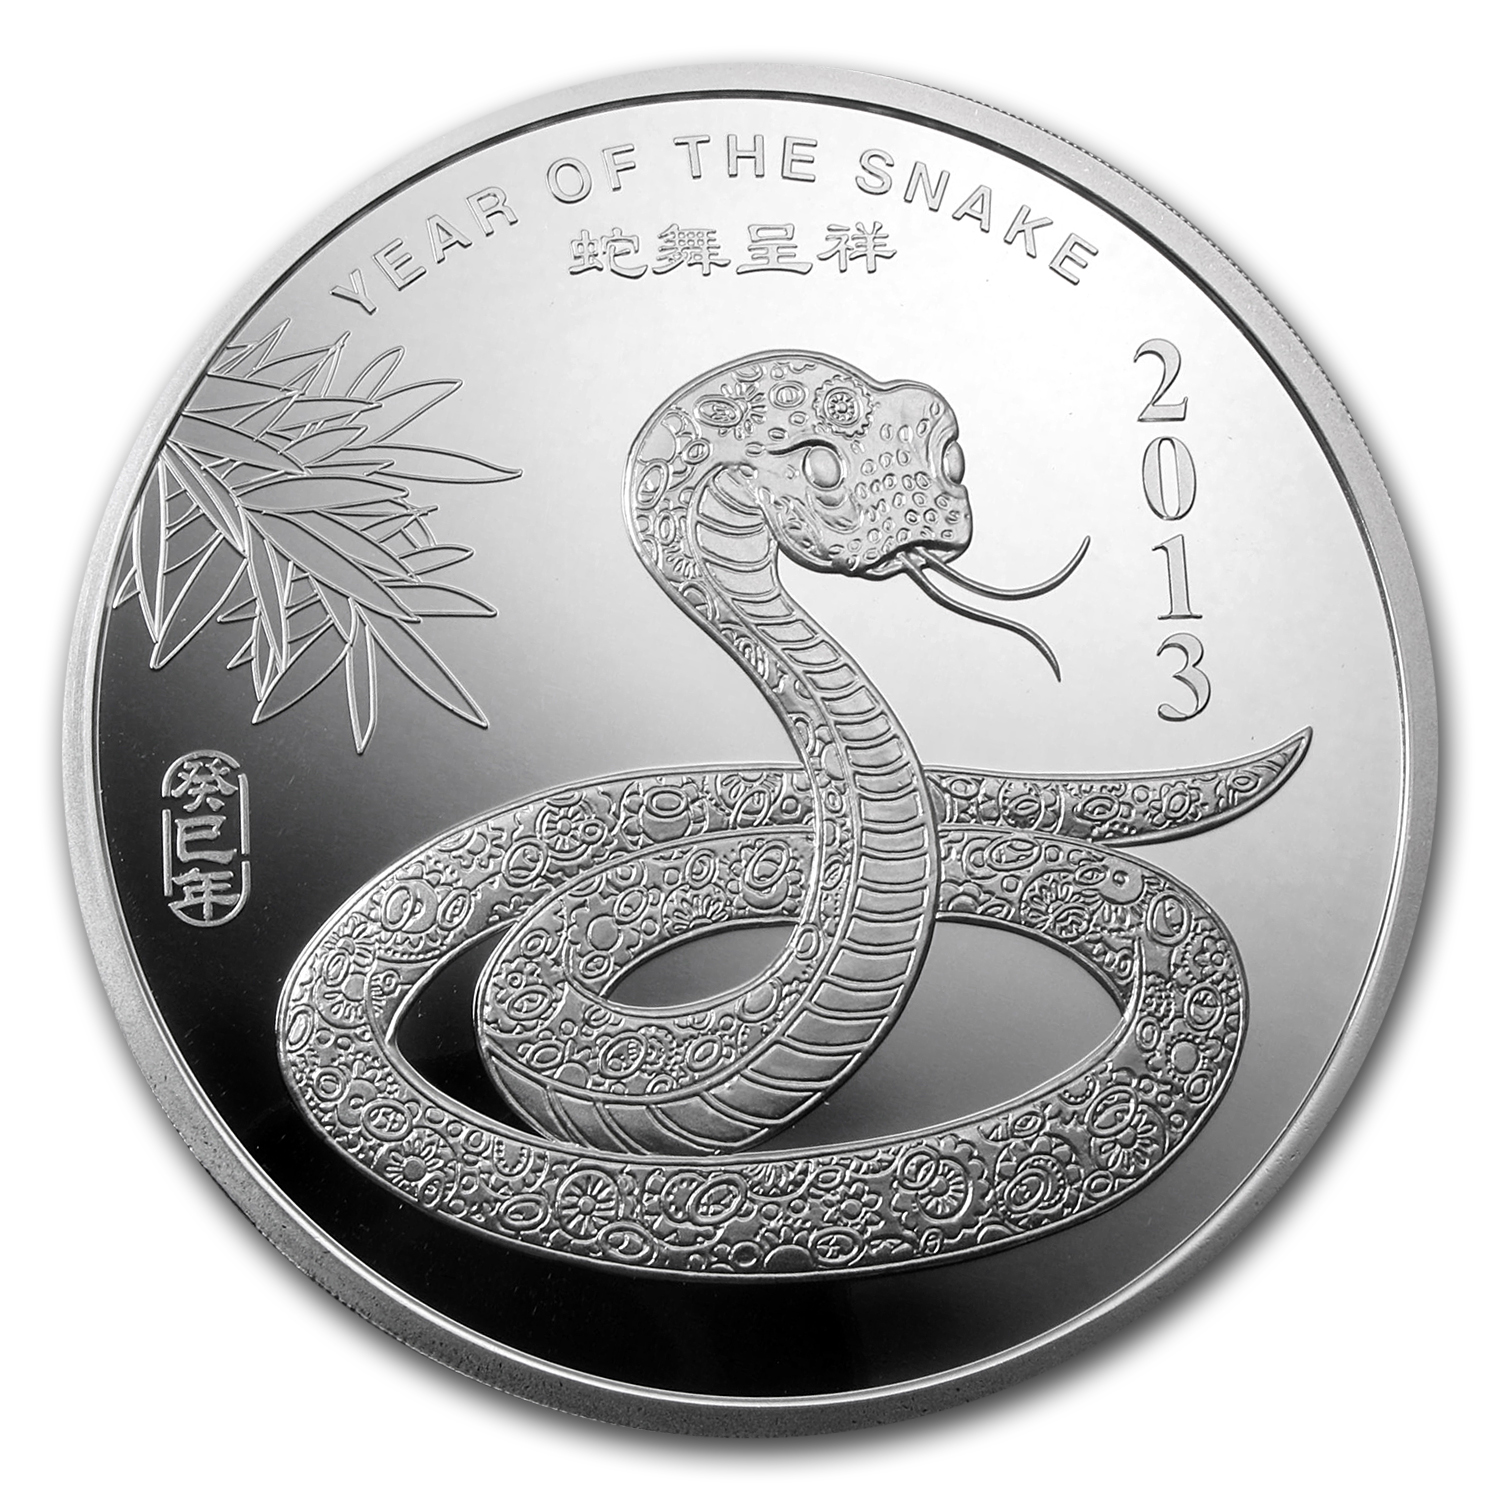 10 oz Silver Round - APMEX (2013 Year of the Snake)